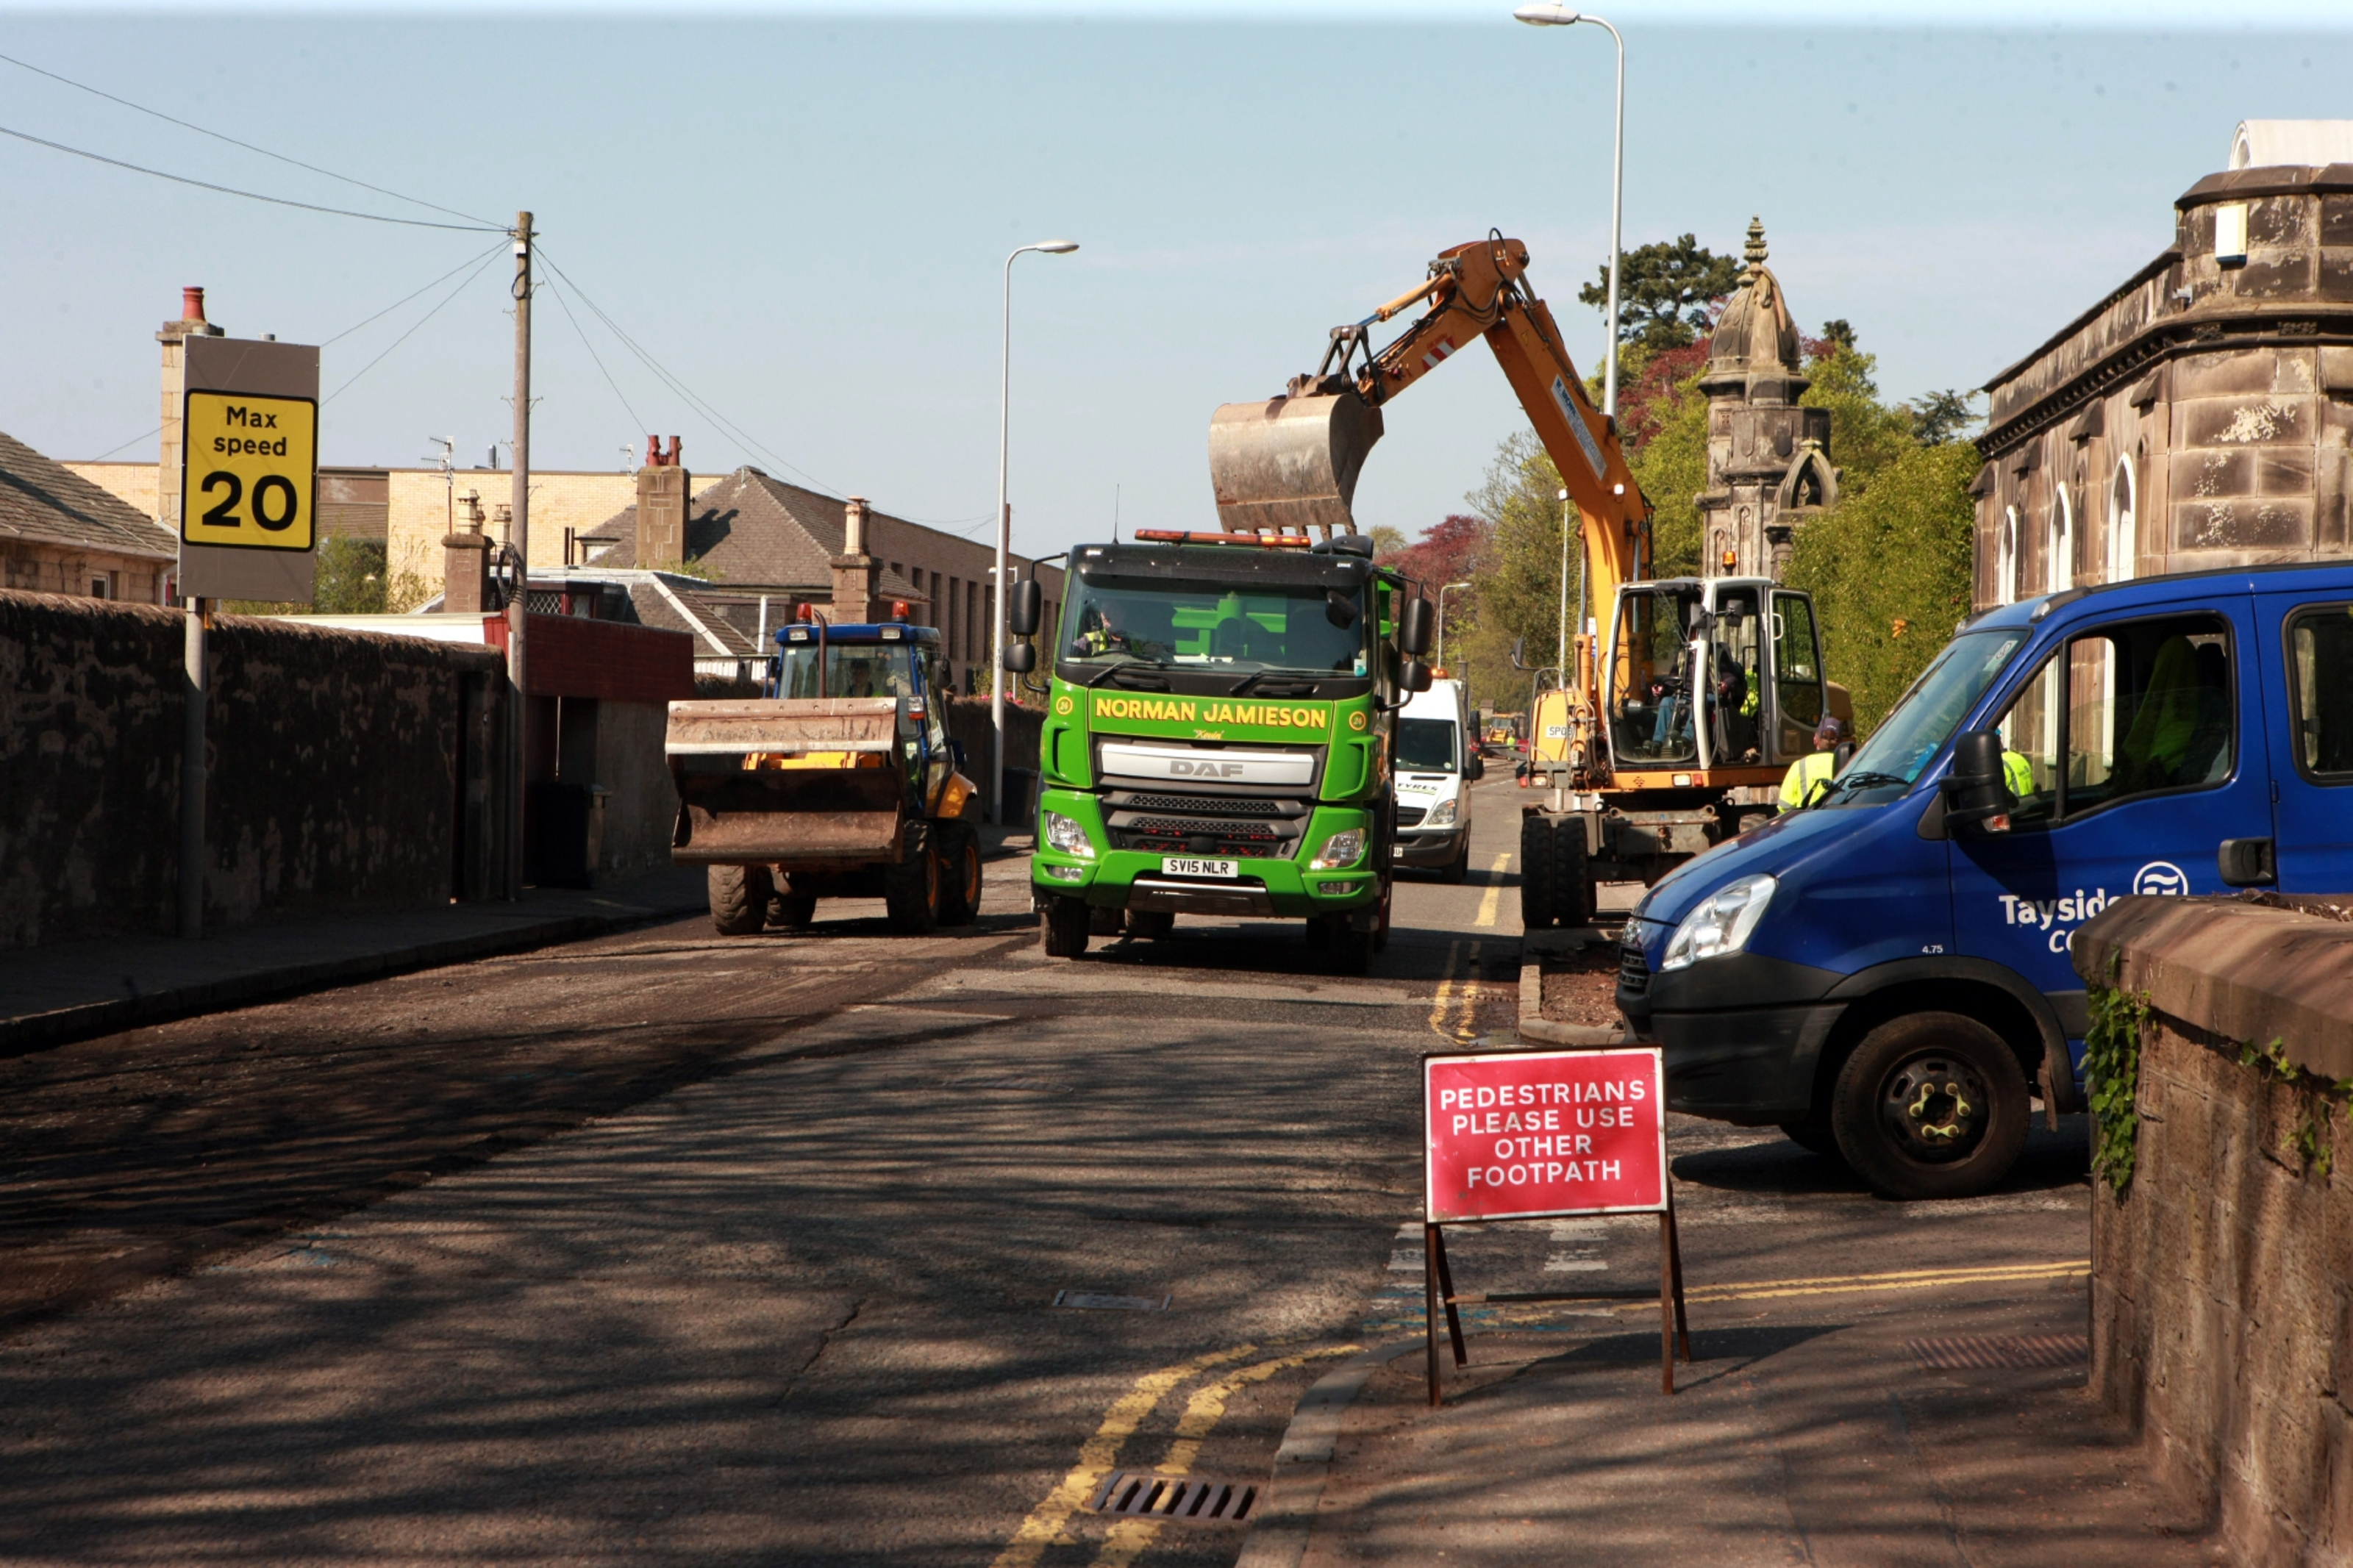 The West End - and Perth Road in particular - has faced repeated roadworks disruption since 2016